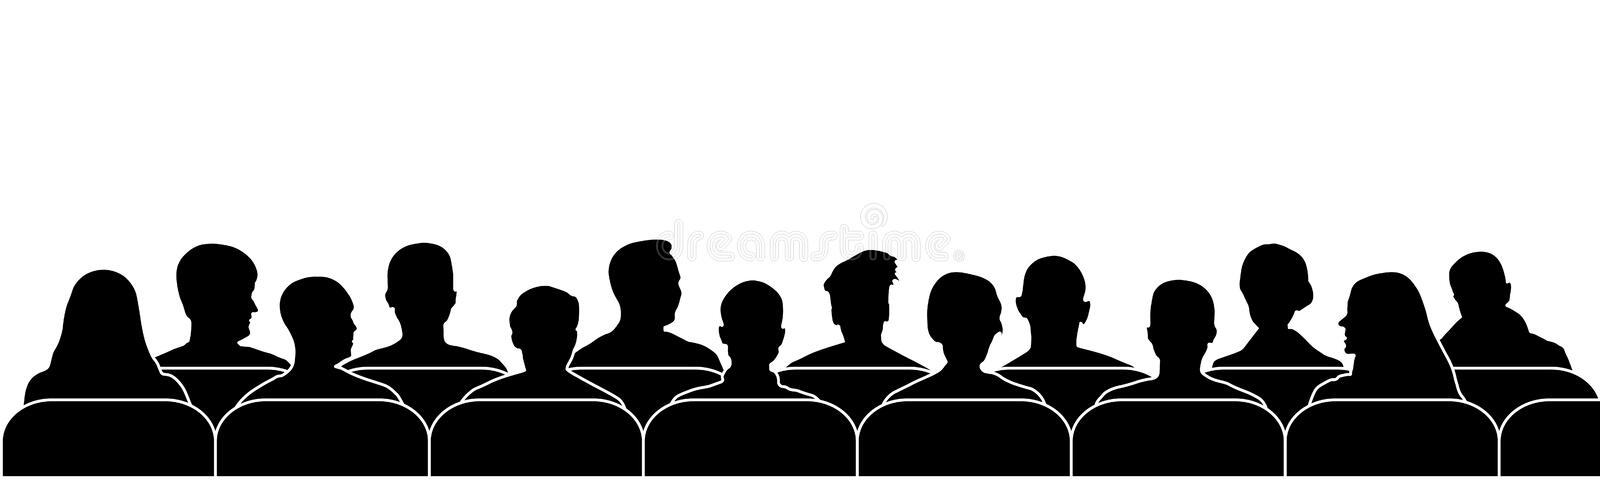 Crowd Theater Stock Illustrations 576 Crowd Theater Stock Illustrations Vectors Clipart Dreamstime